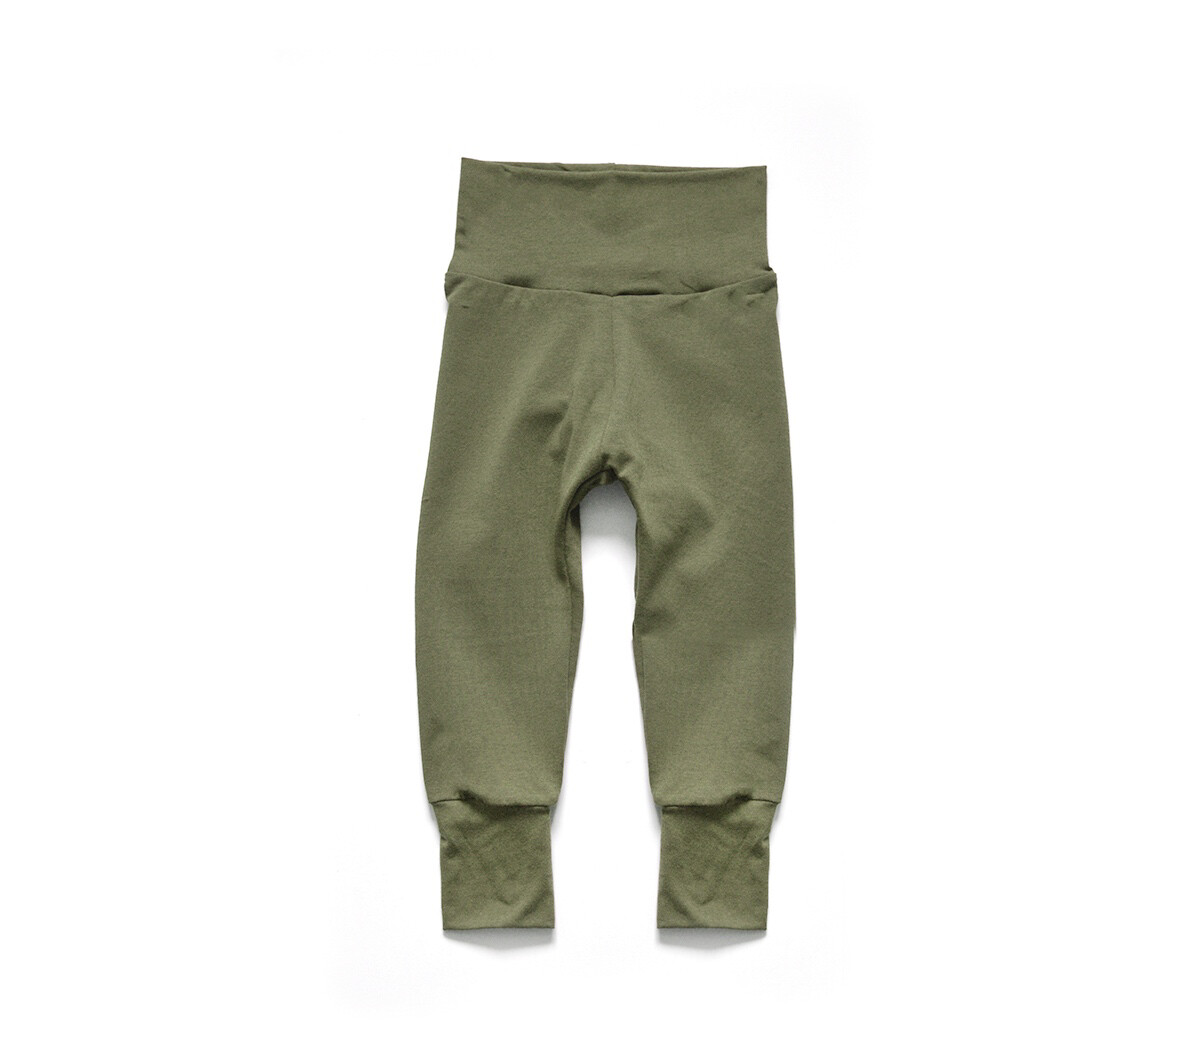 Little Sprout Pants™ in Olive | Grow With Me Leggings - Bamboo